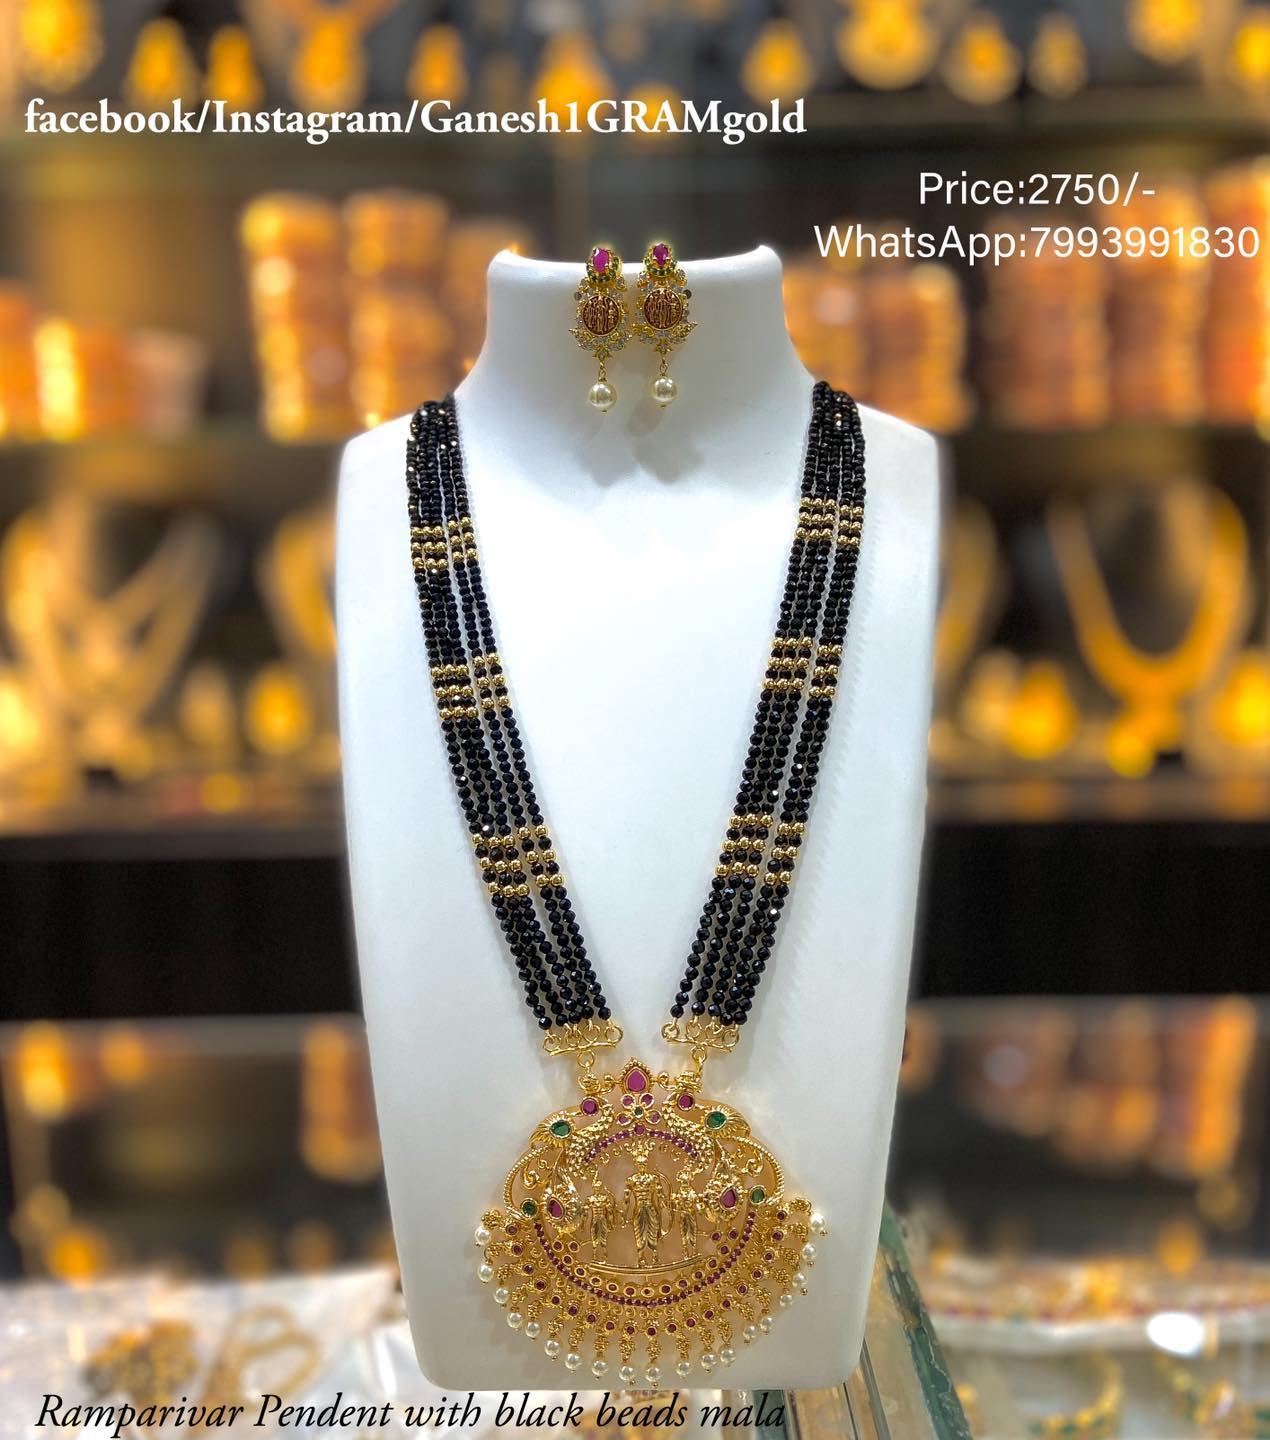 Ramparivar pendent with black beads mala Price:2750/- Cash on delivery (COD) available 1grm gold jewellery 1gm jewellery online one gram gold mangalsutra